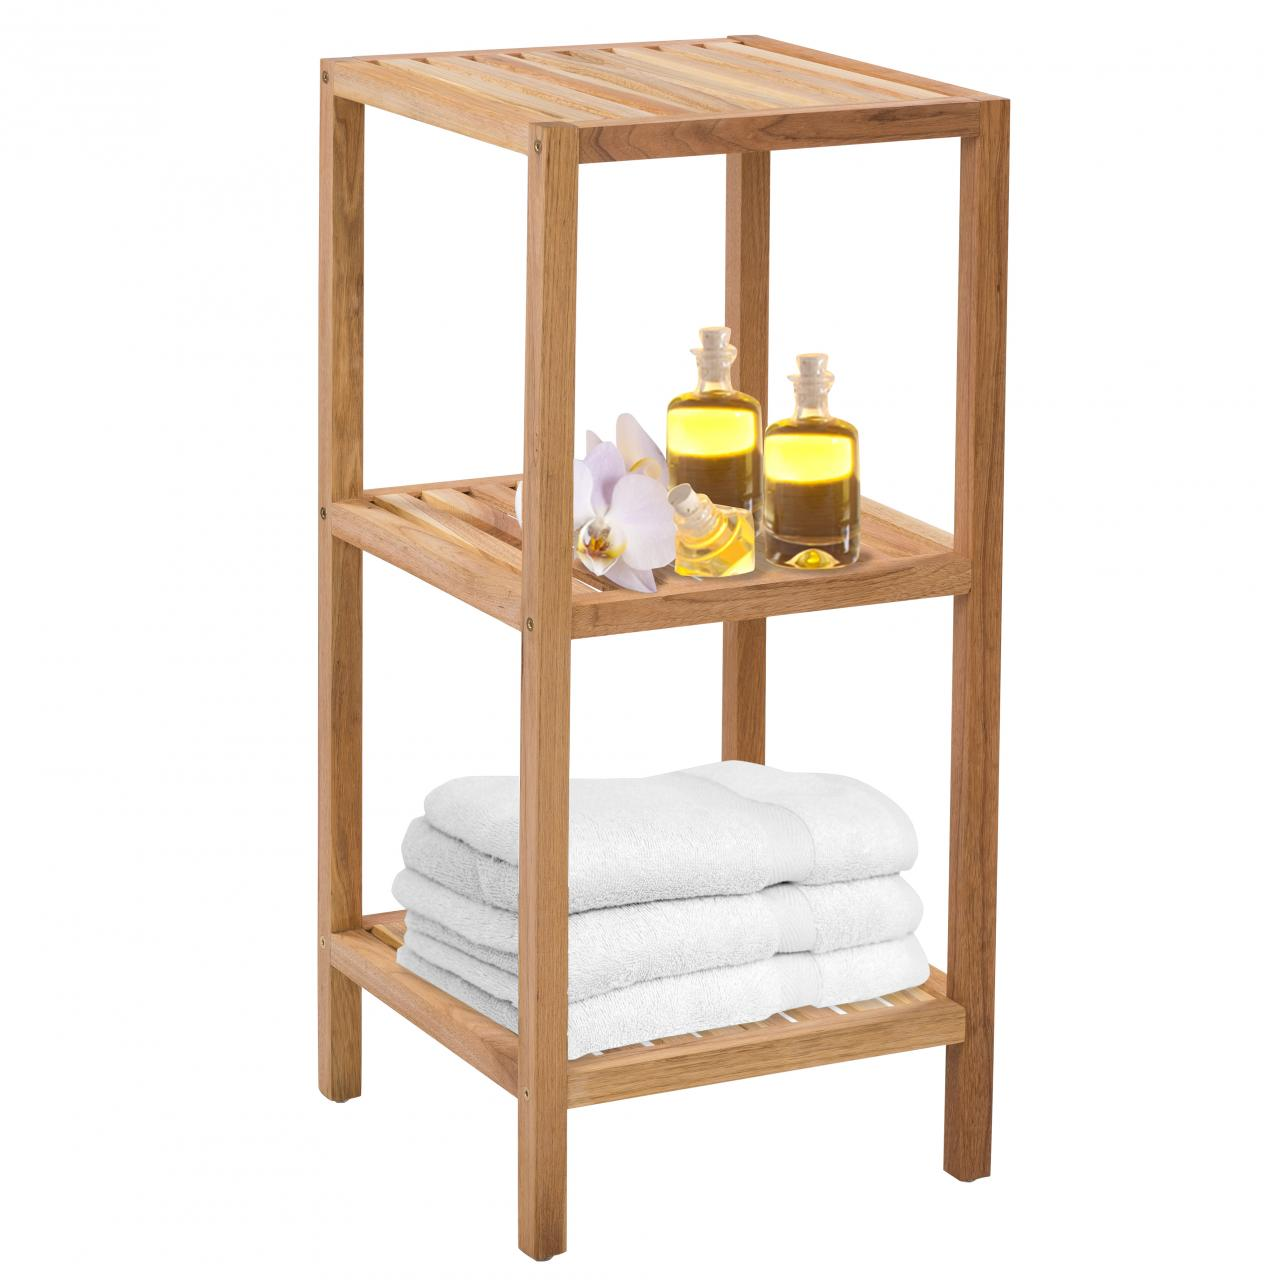 Badregal holz badezimmerregal haushaltsregal standregal regal bad holzregal ebay - Standregal badezimmer ...